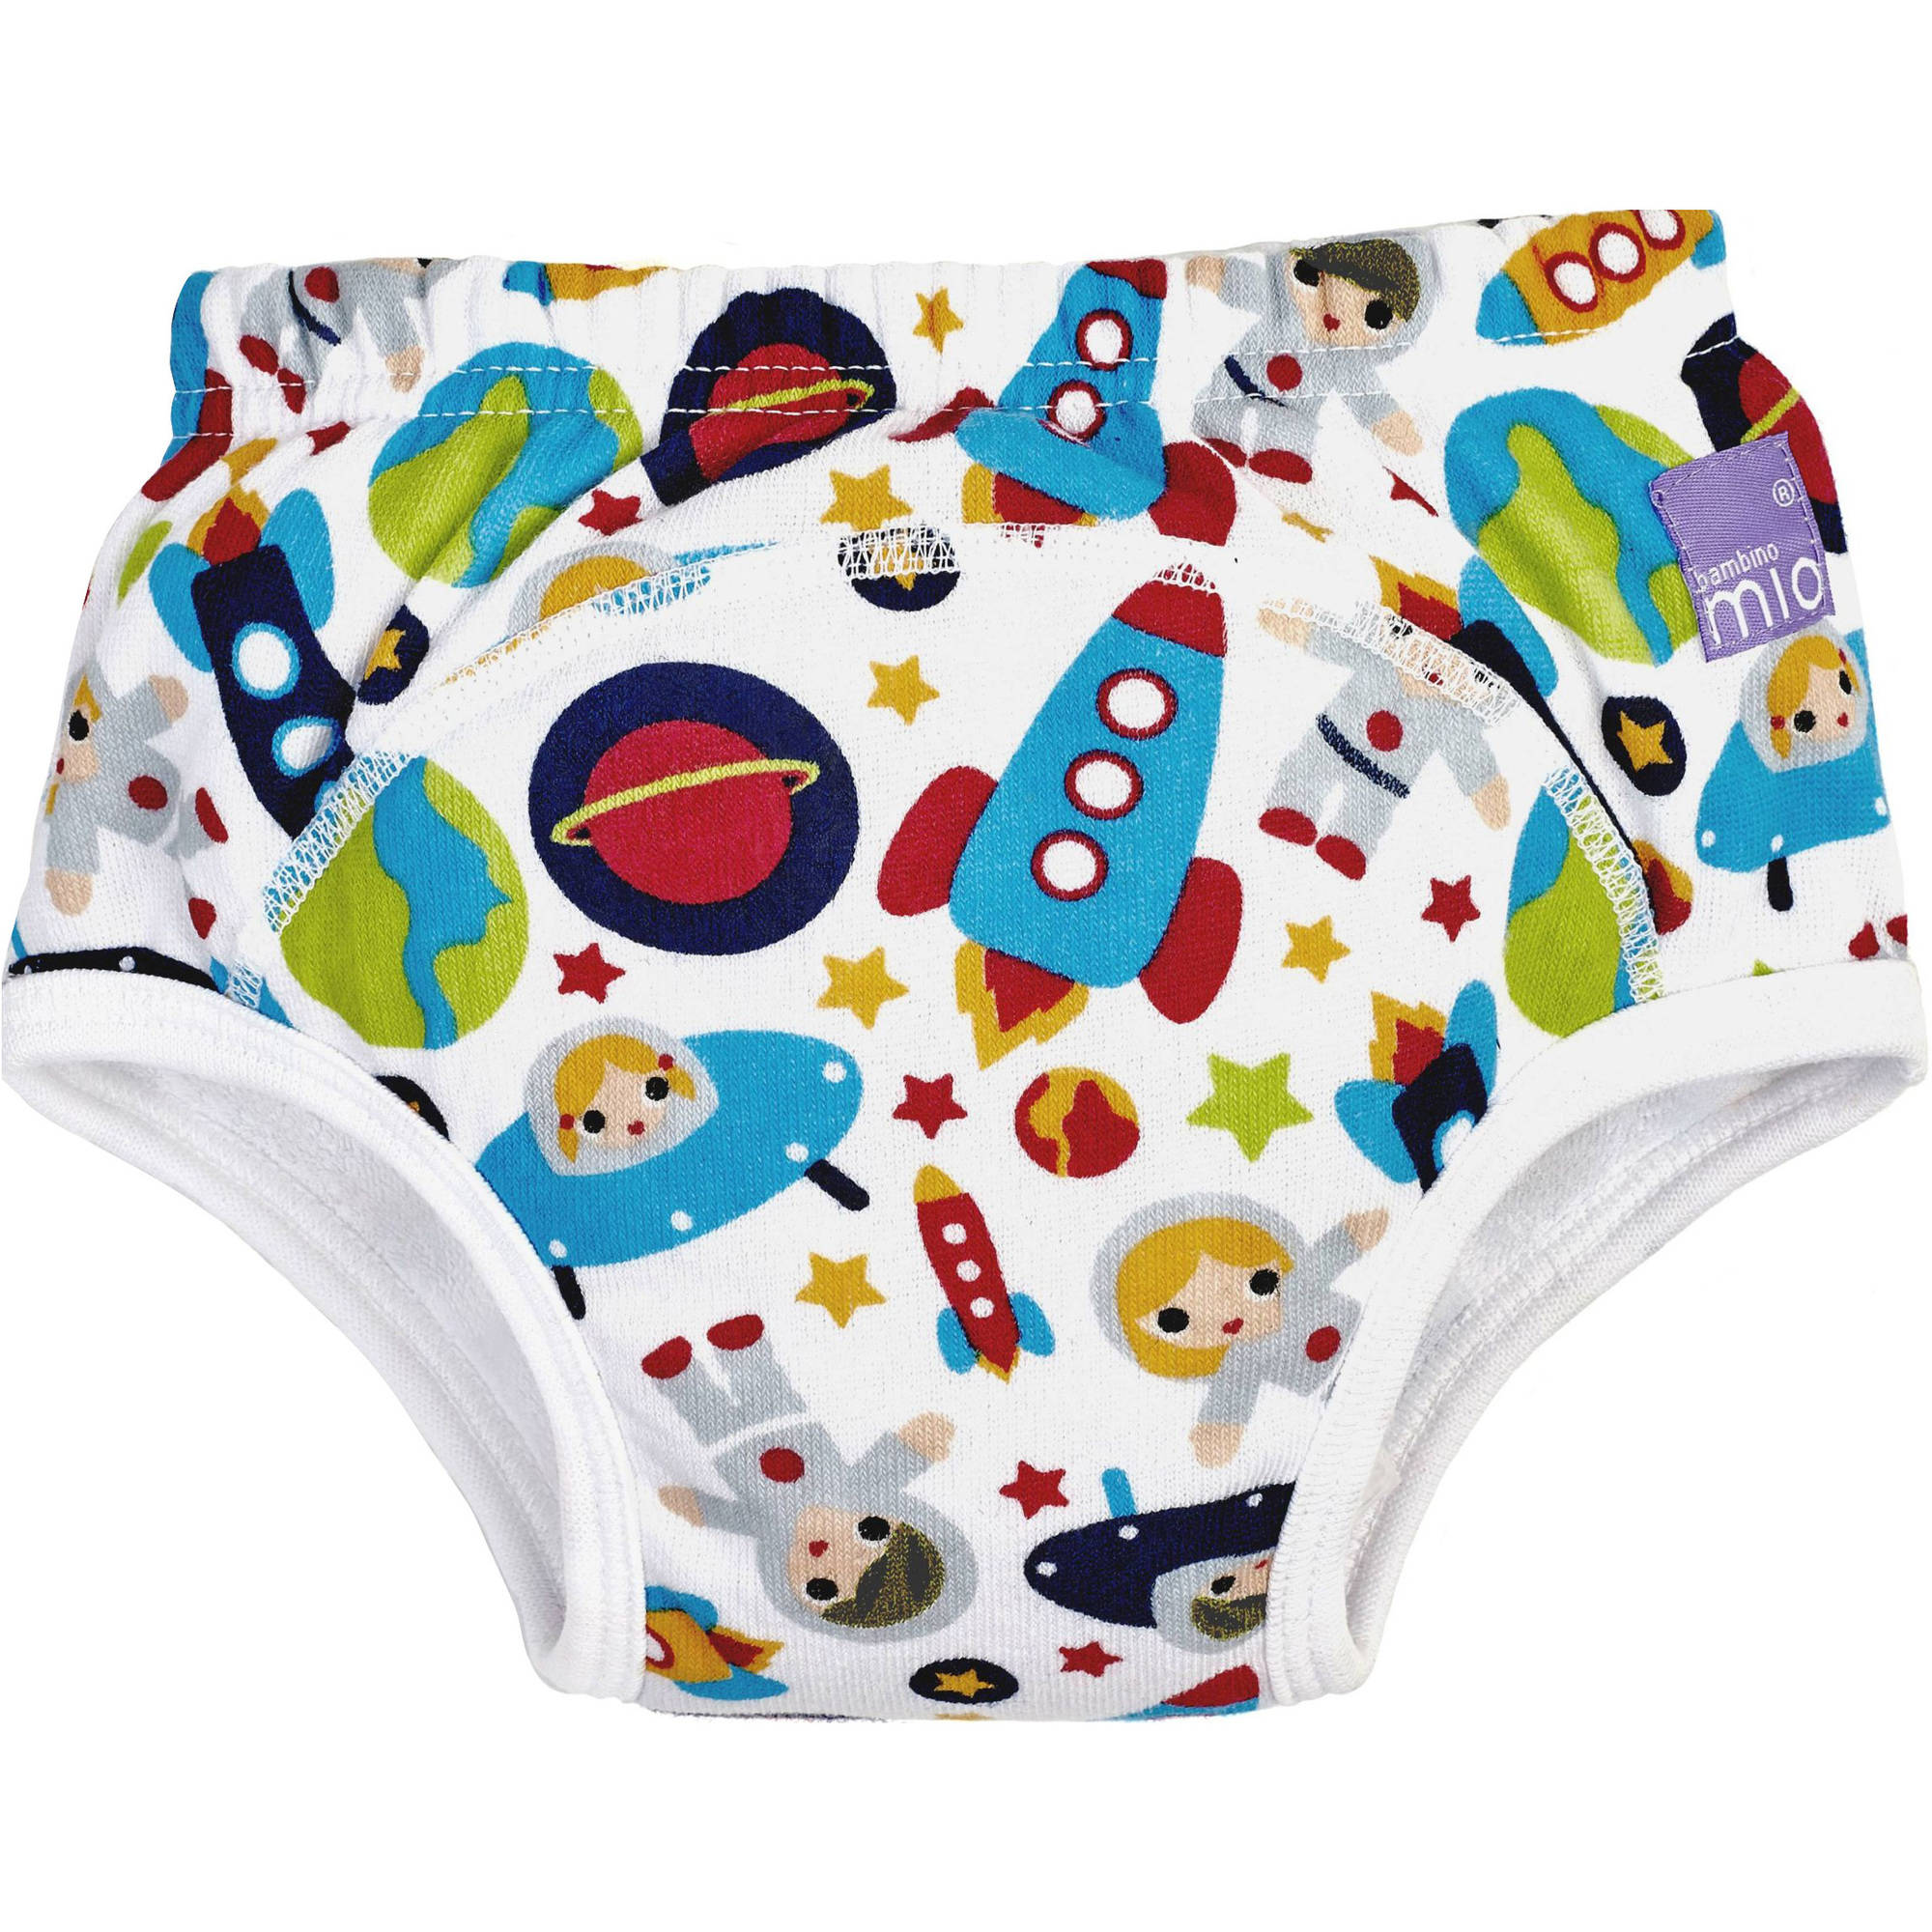 Bambino Mio Potty Training Pants, Outer Space, (Choose Your Size)